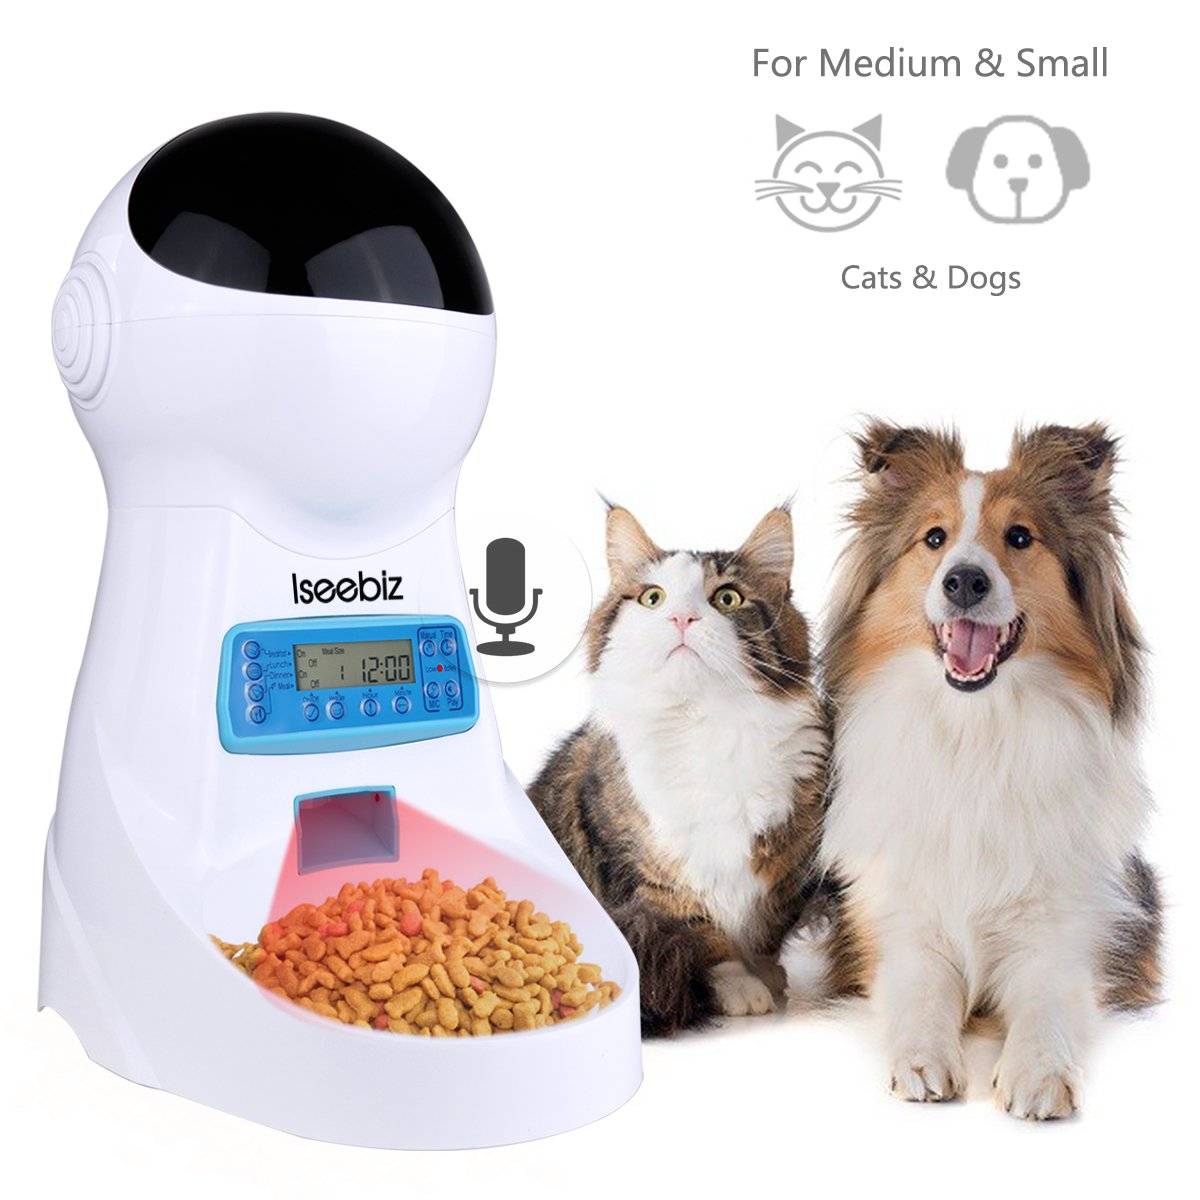 Pet Supplies Dishes, Feeders & Fountains Trustful Cat Mate C50 Automatic 5 Meal Pet Feeder For Cats Or Small Dogs Boxed Wide Selection;